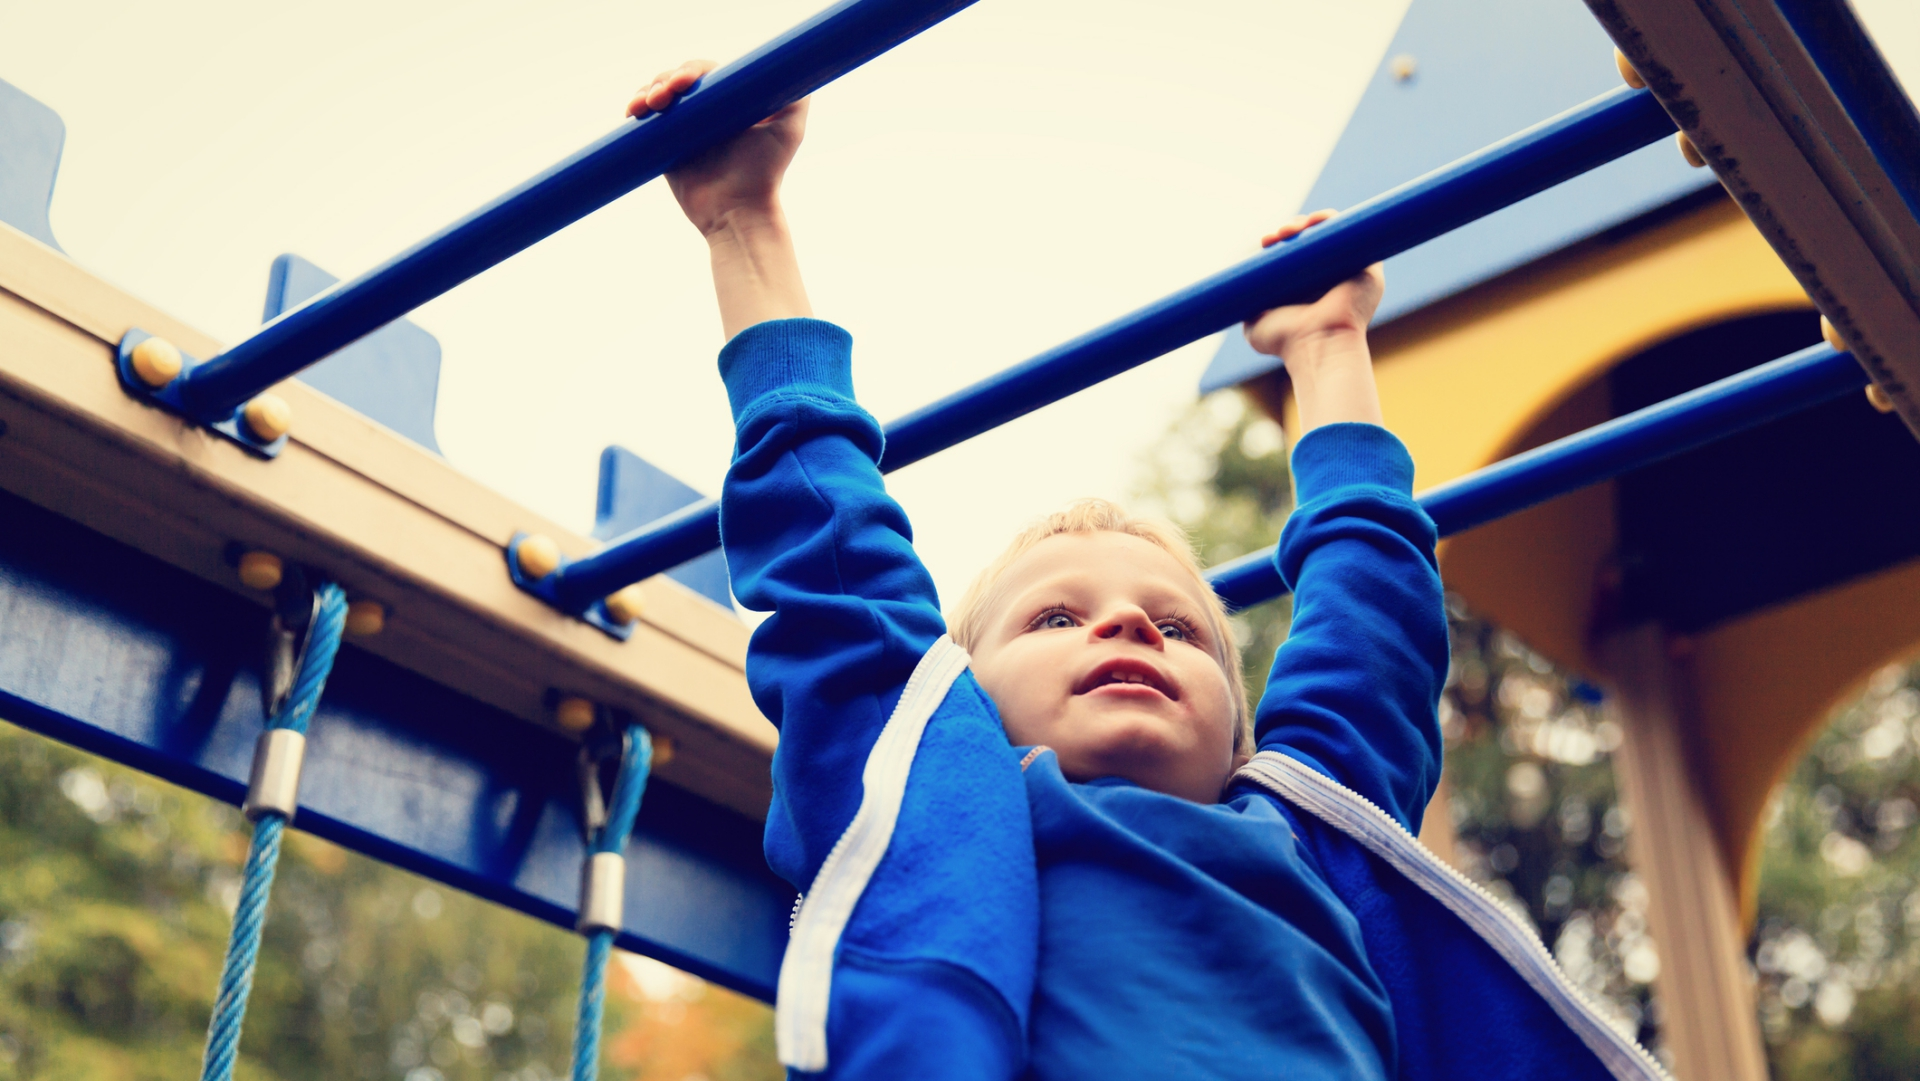 Could swinging on the monkey bars do as much for your child's education as learning multiplication? Pediatrician Rebecca Lasseter, MD explains the importance of play time.